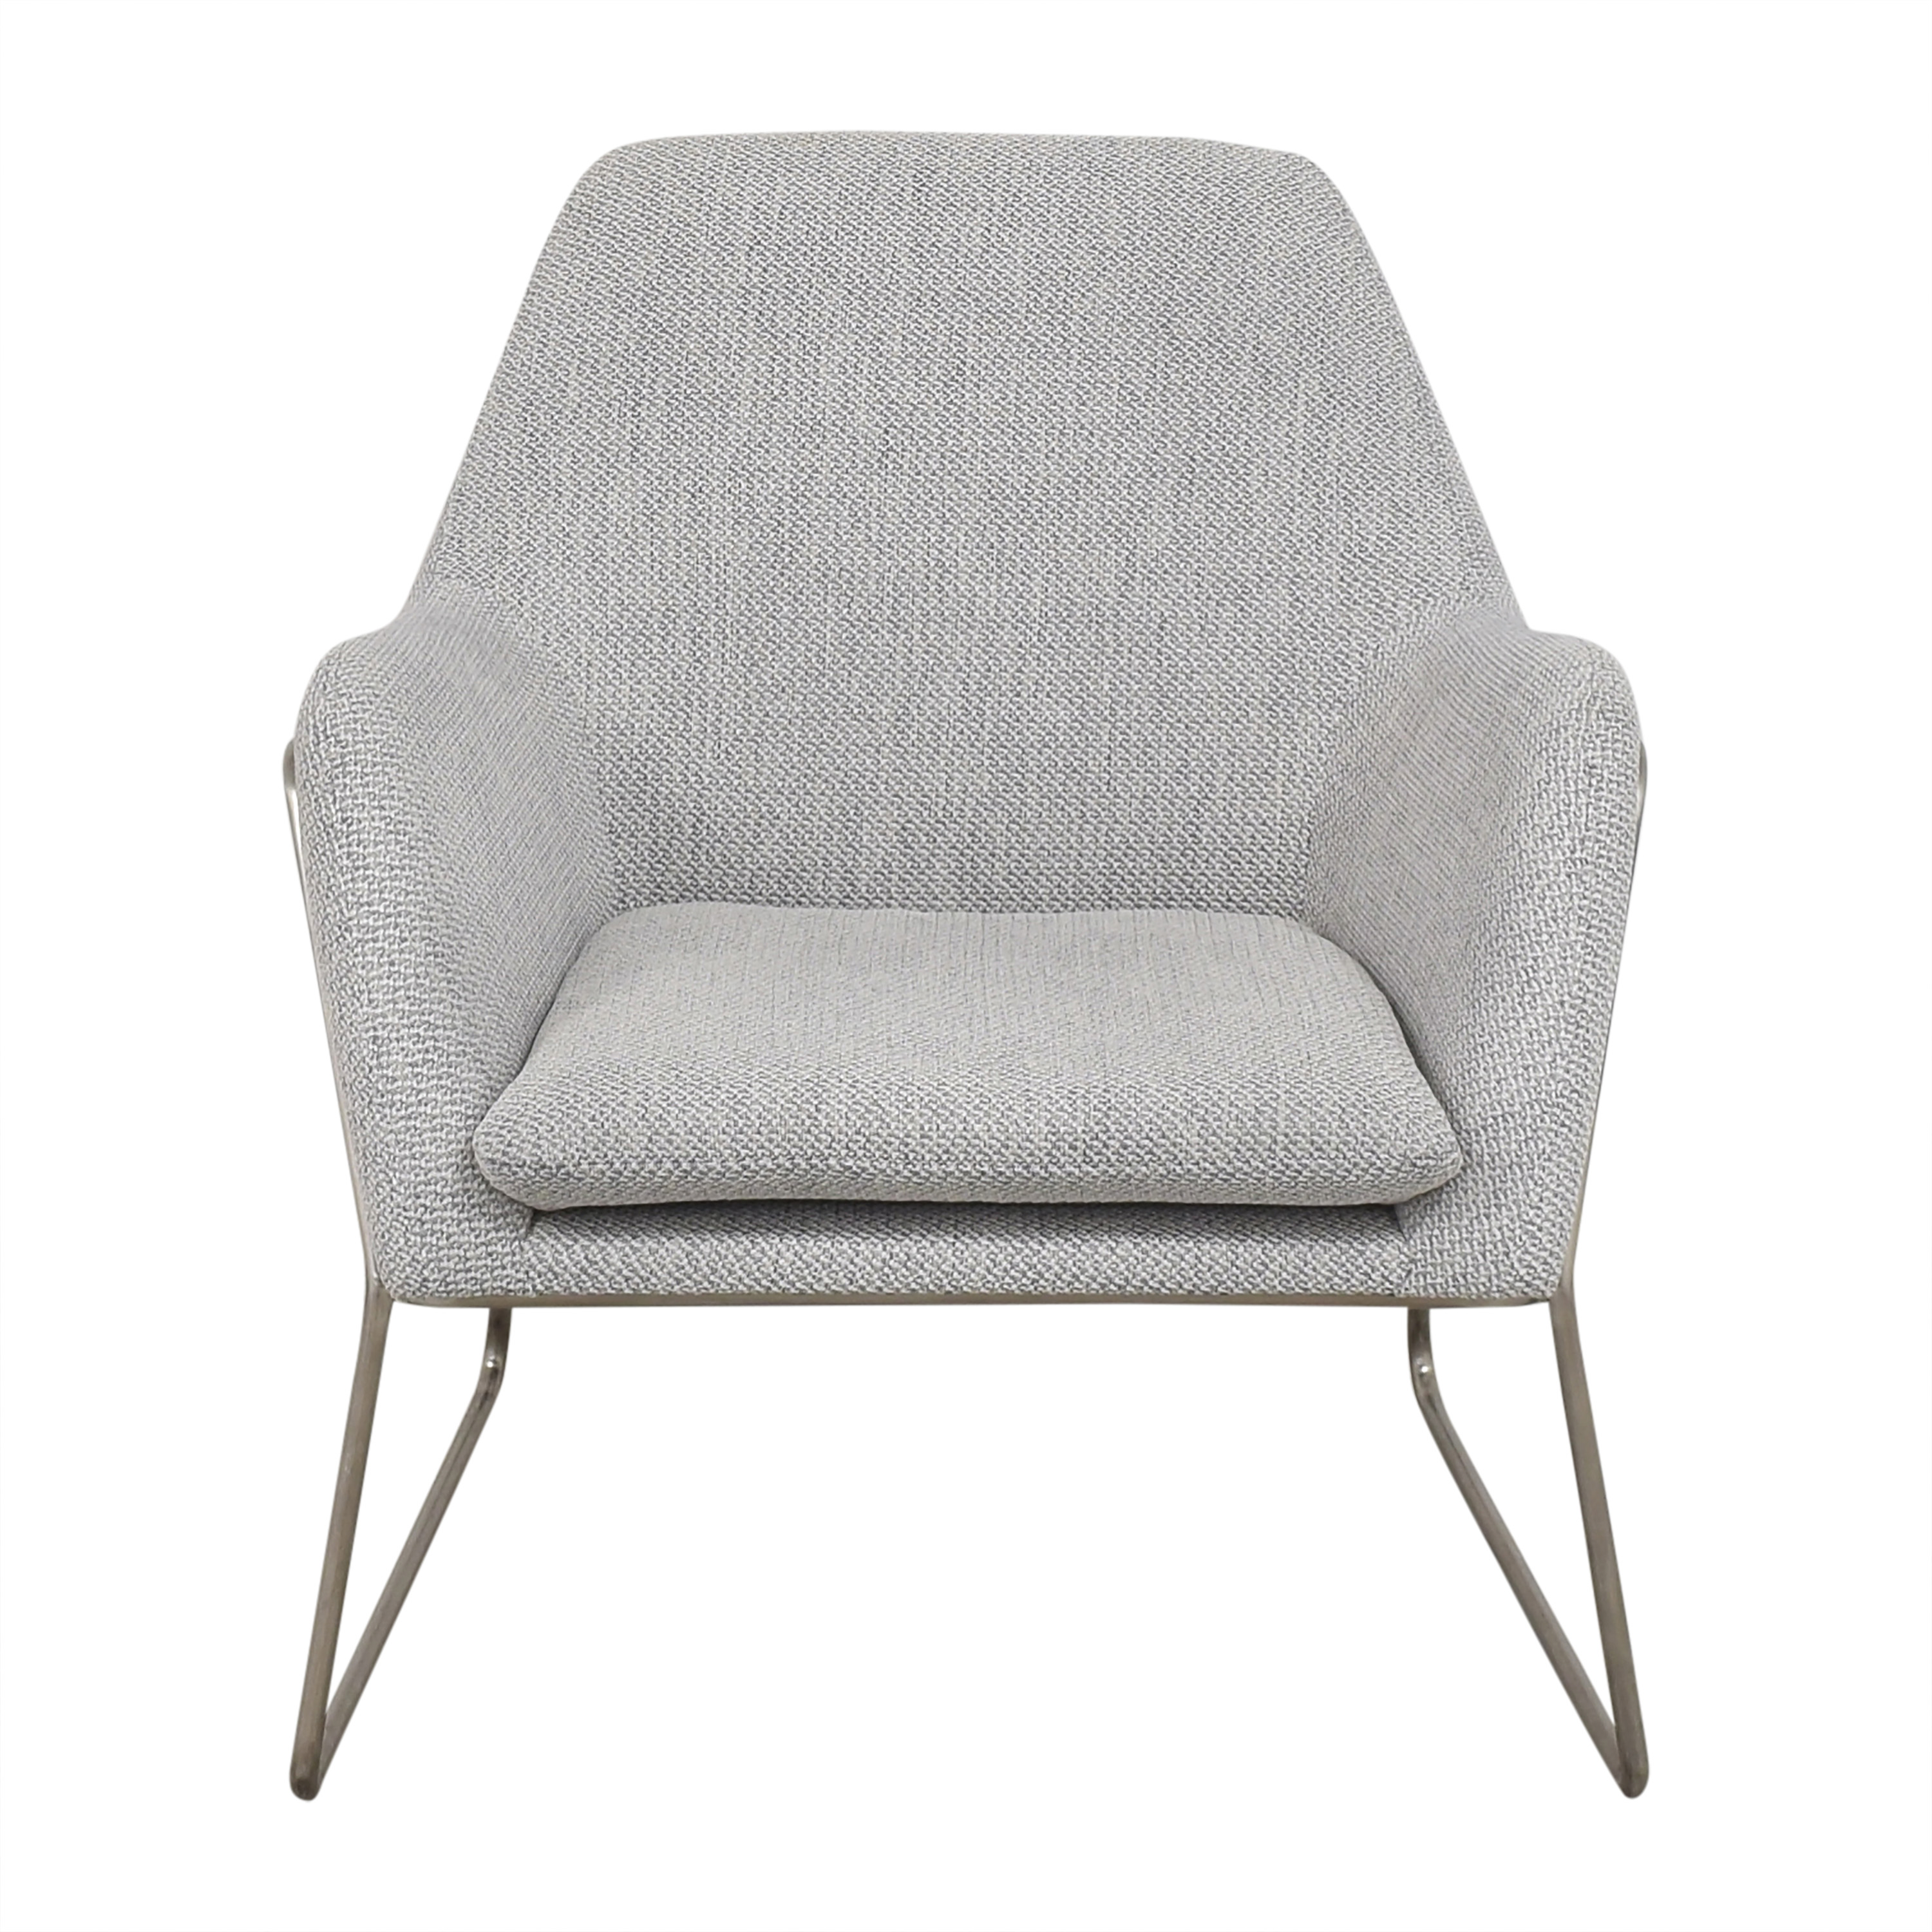 Article Article Forma Chair nyc